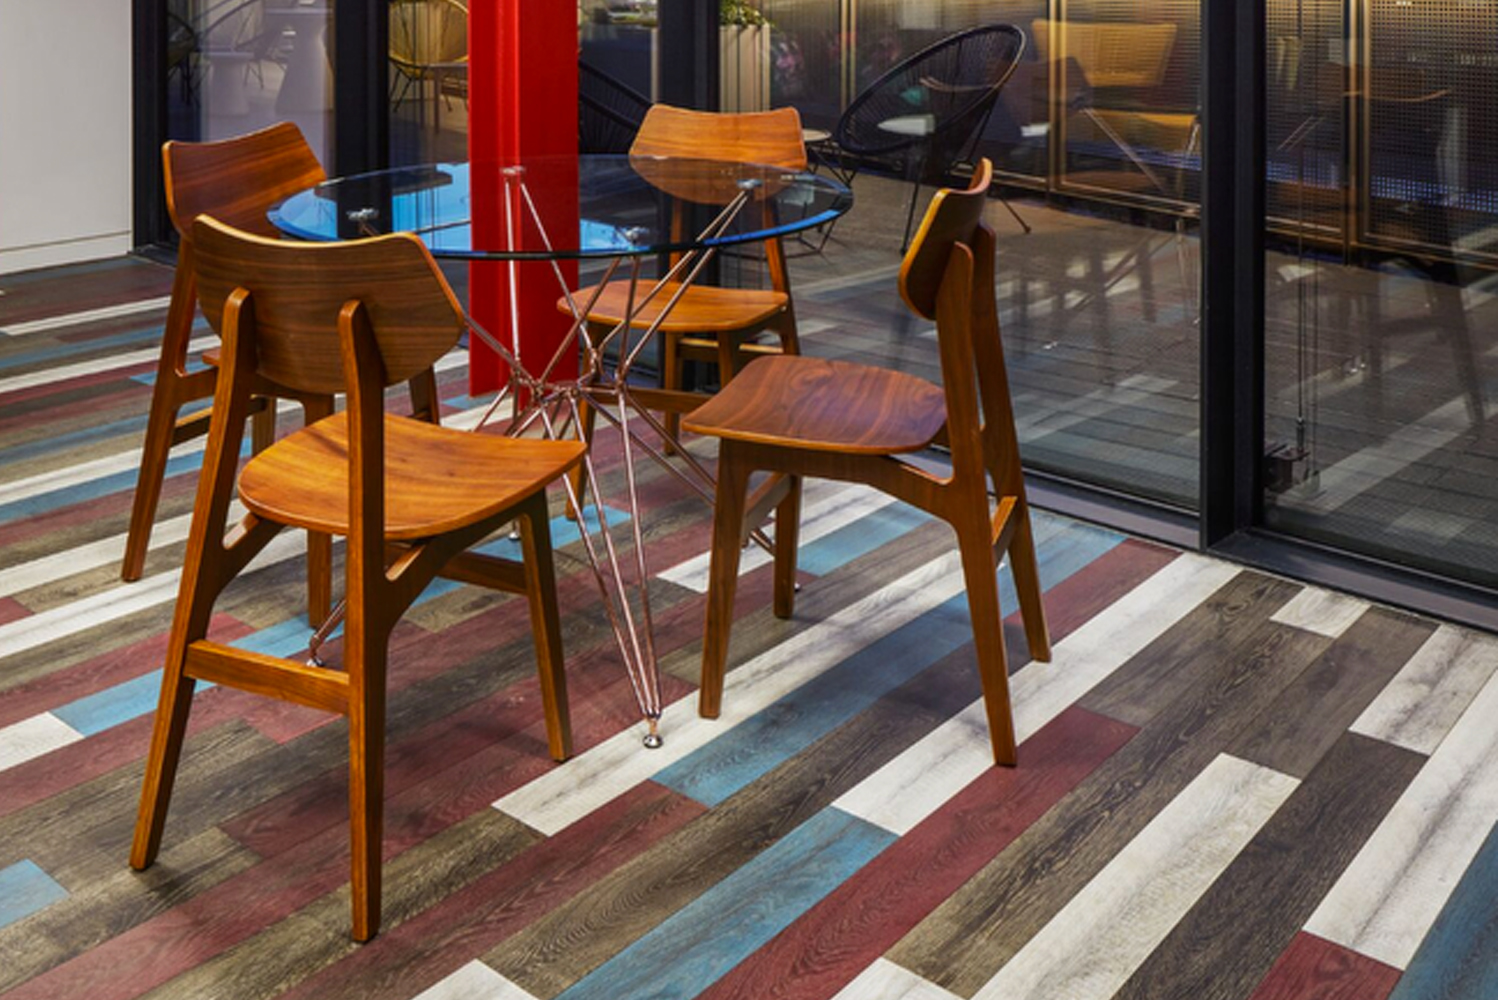 These engineered planks were designed in response to those who want the look and feel of hardwoods without going over budget.